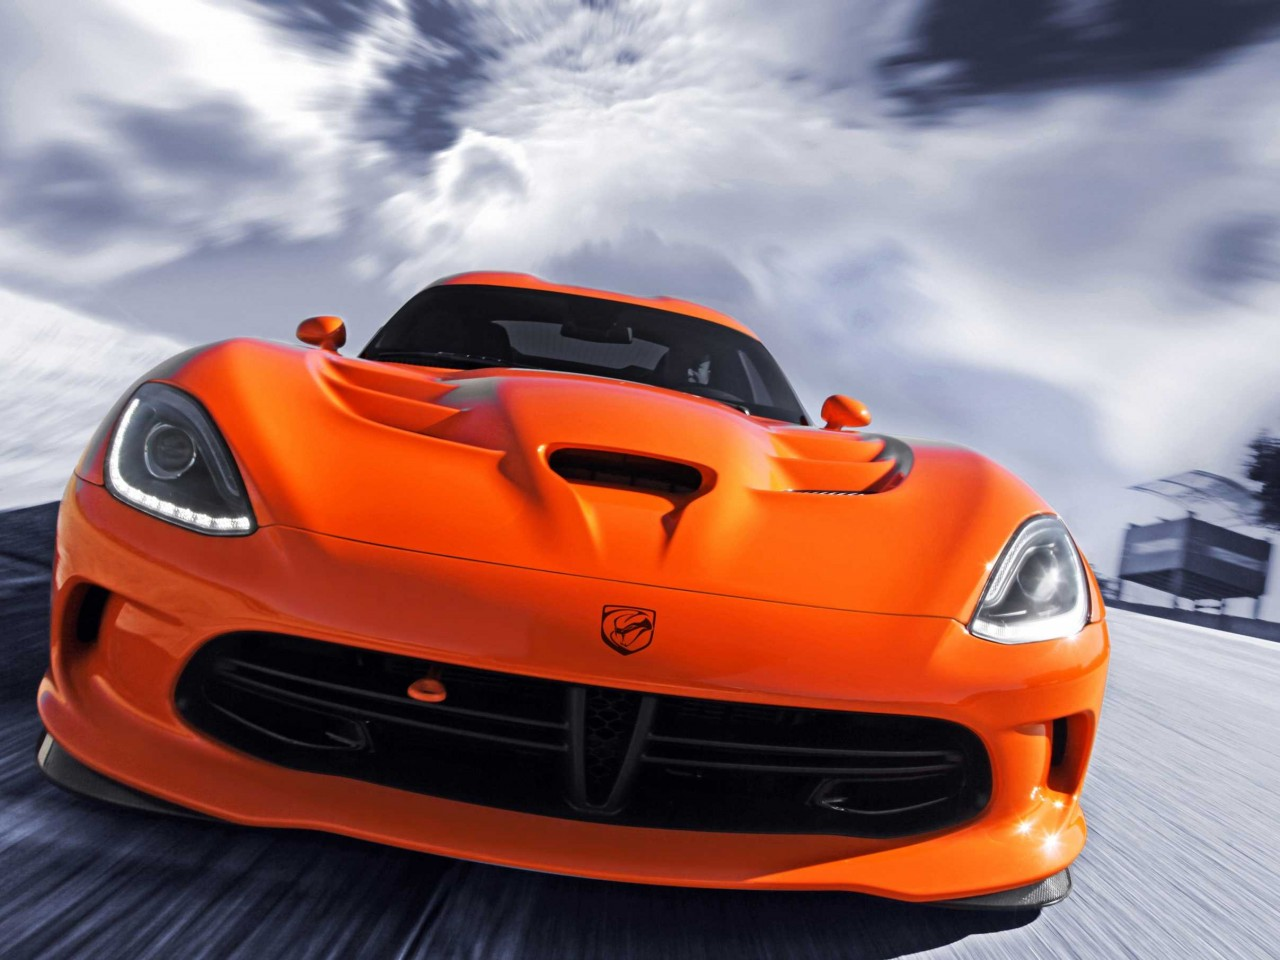 Cars Wallpapers: 2014 SRT Viper TA Car Wallpaper